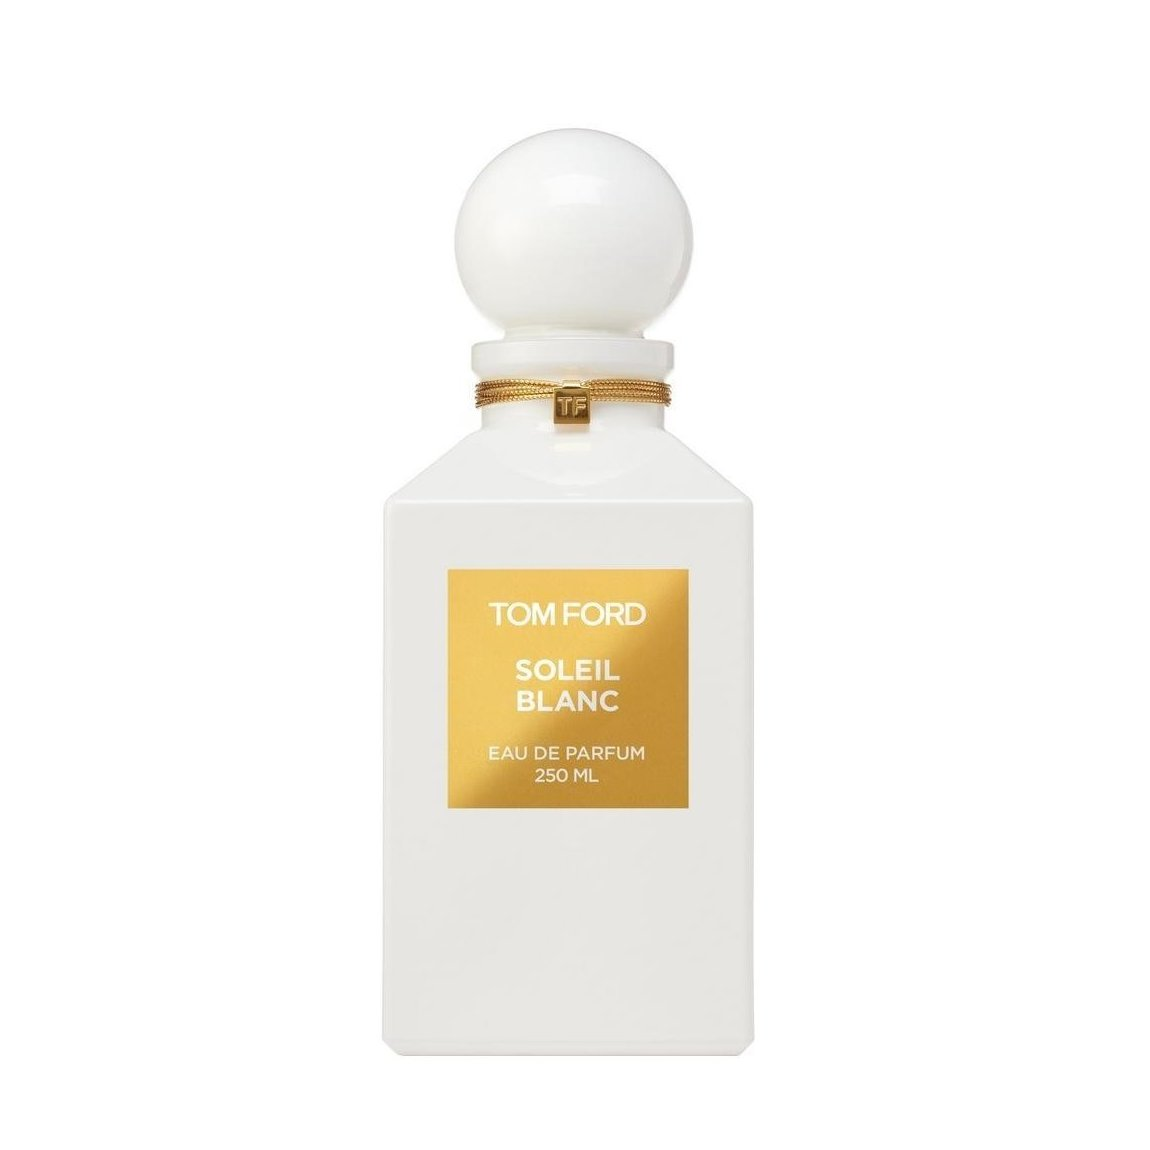 TOM FORD Soleil Blanc 250 ml product smear.